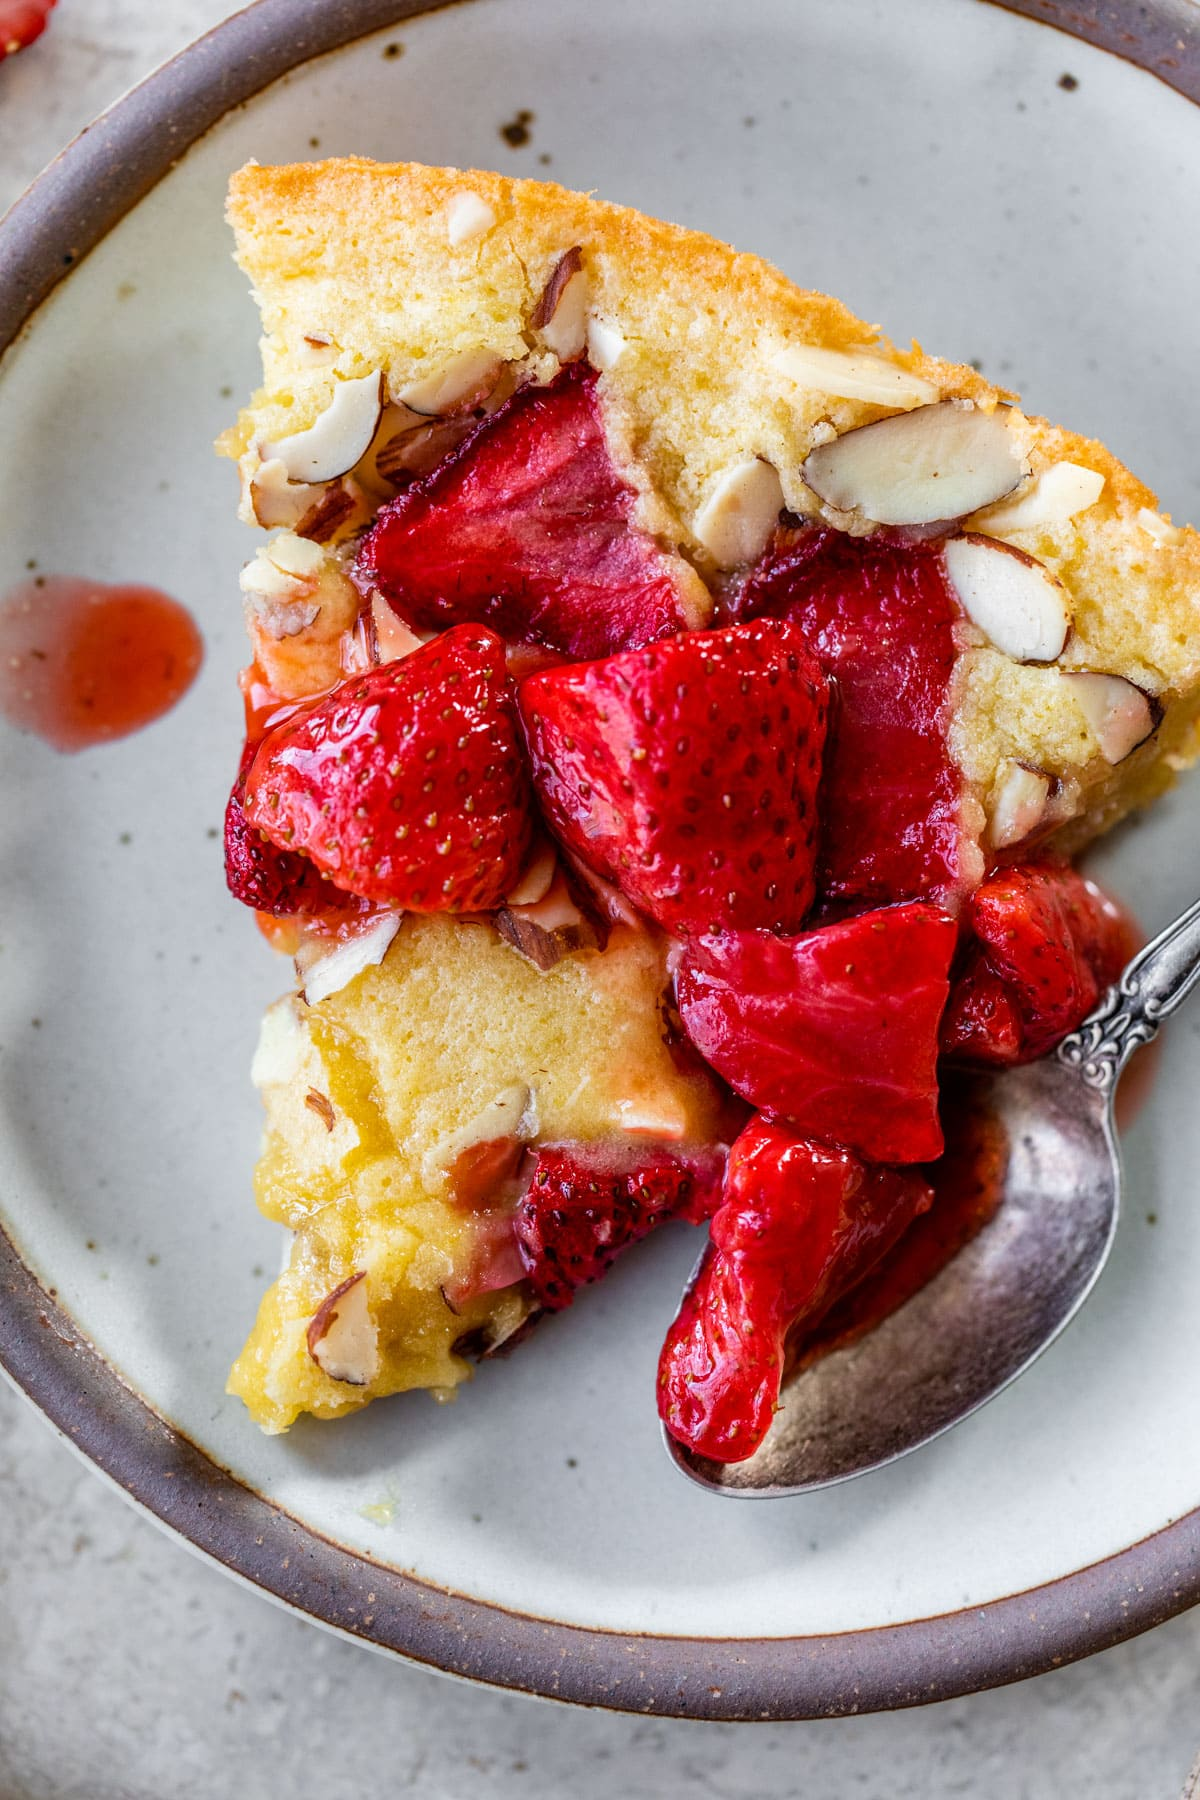 Roasted Strawberries for Strawberry Almond Skillet Cake